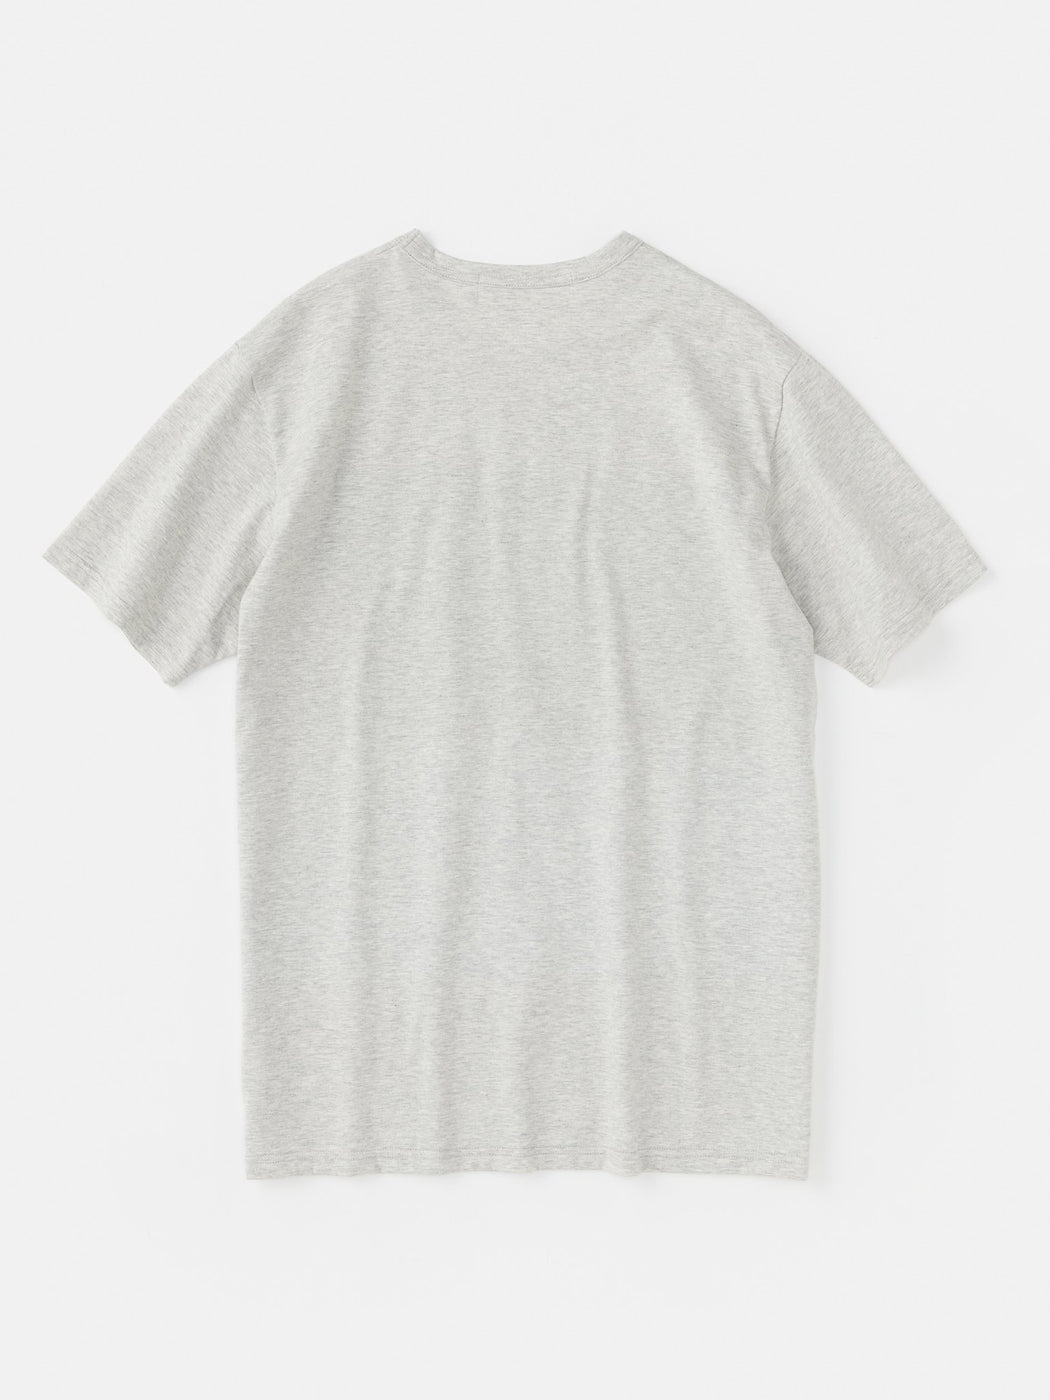 ALOYE Shirt Fabrics Short Sleeve T-shirt Heather Gray-Blue Stripe